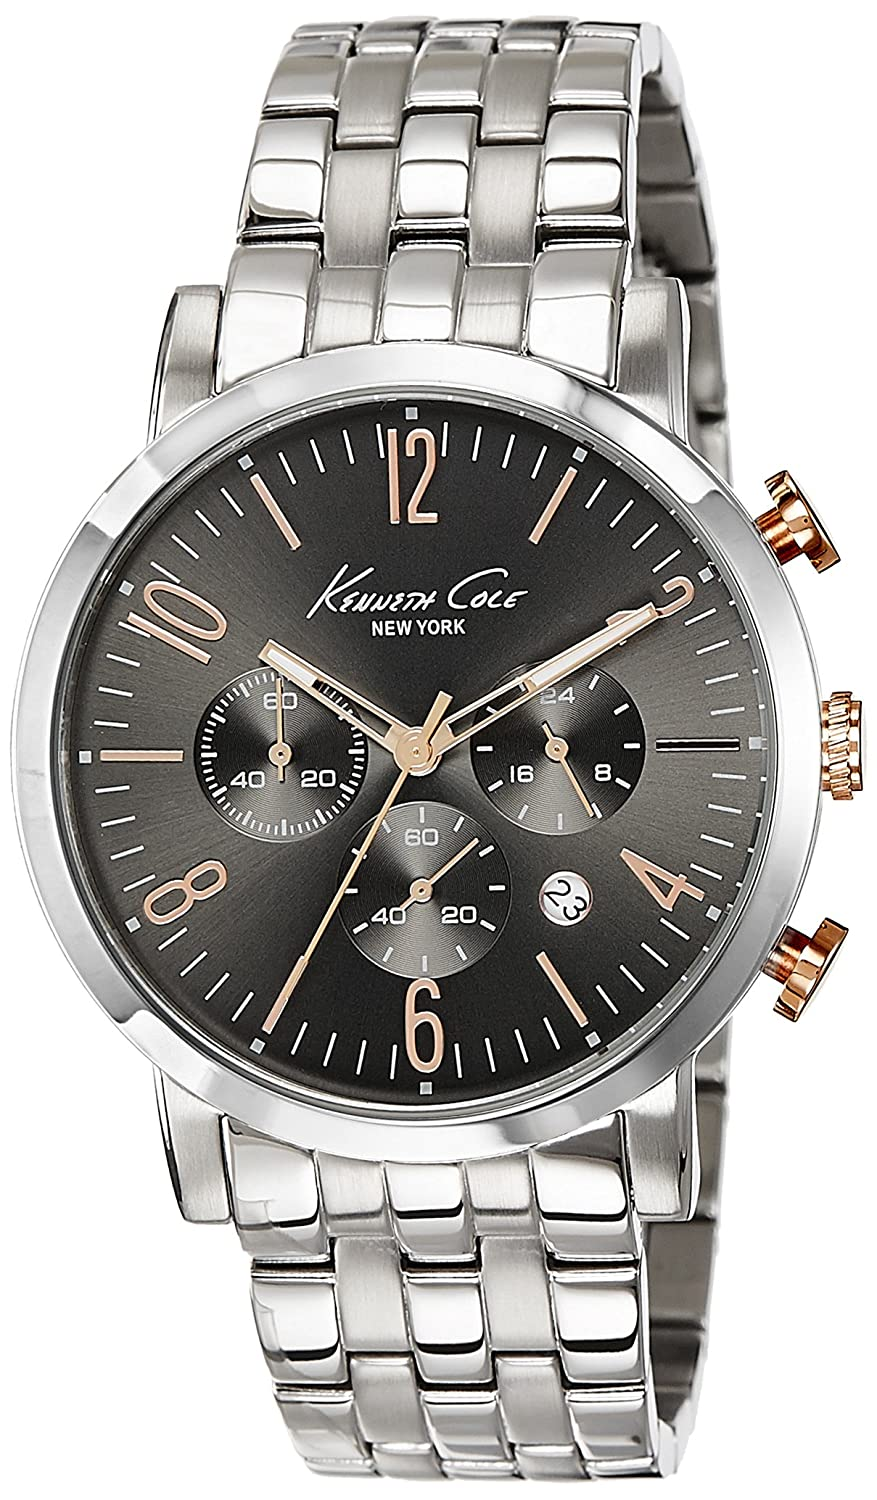 Amazon.com: Kenneth Cole New York Mens 10020828 Dress Sport Analog Display Japanese Quartz Silver Watch: Watches